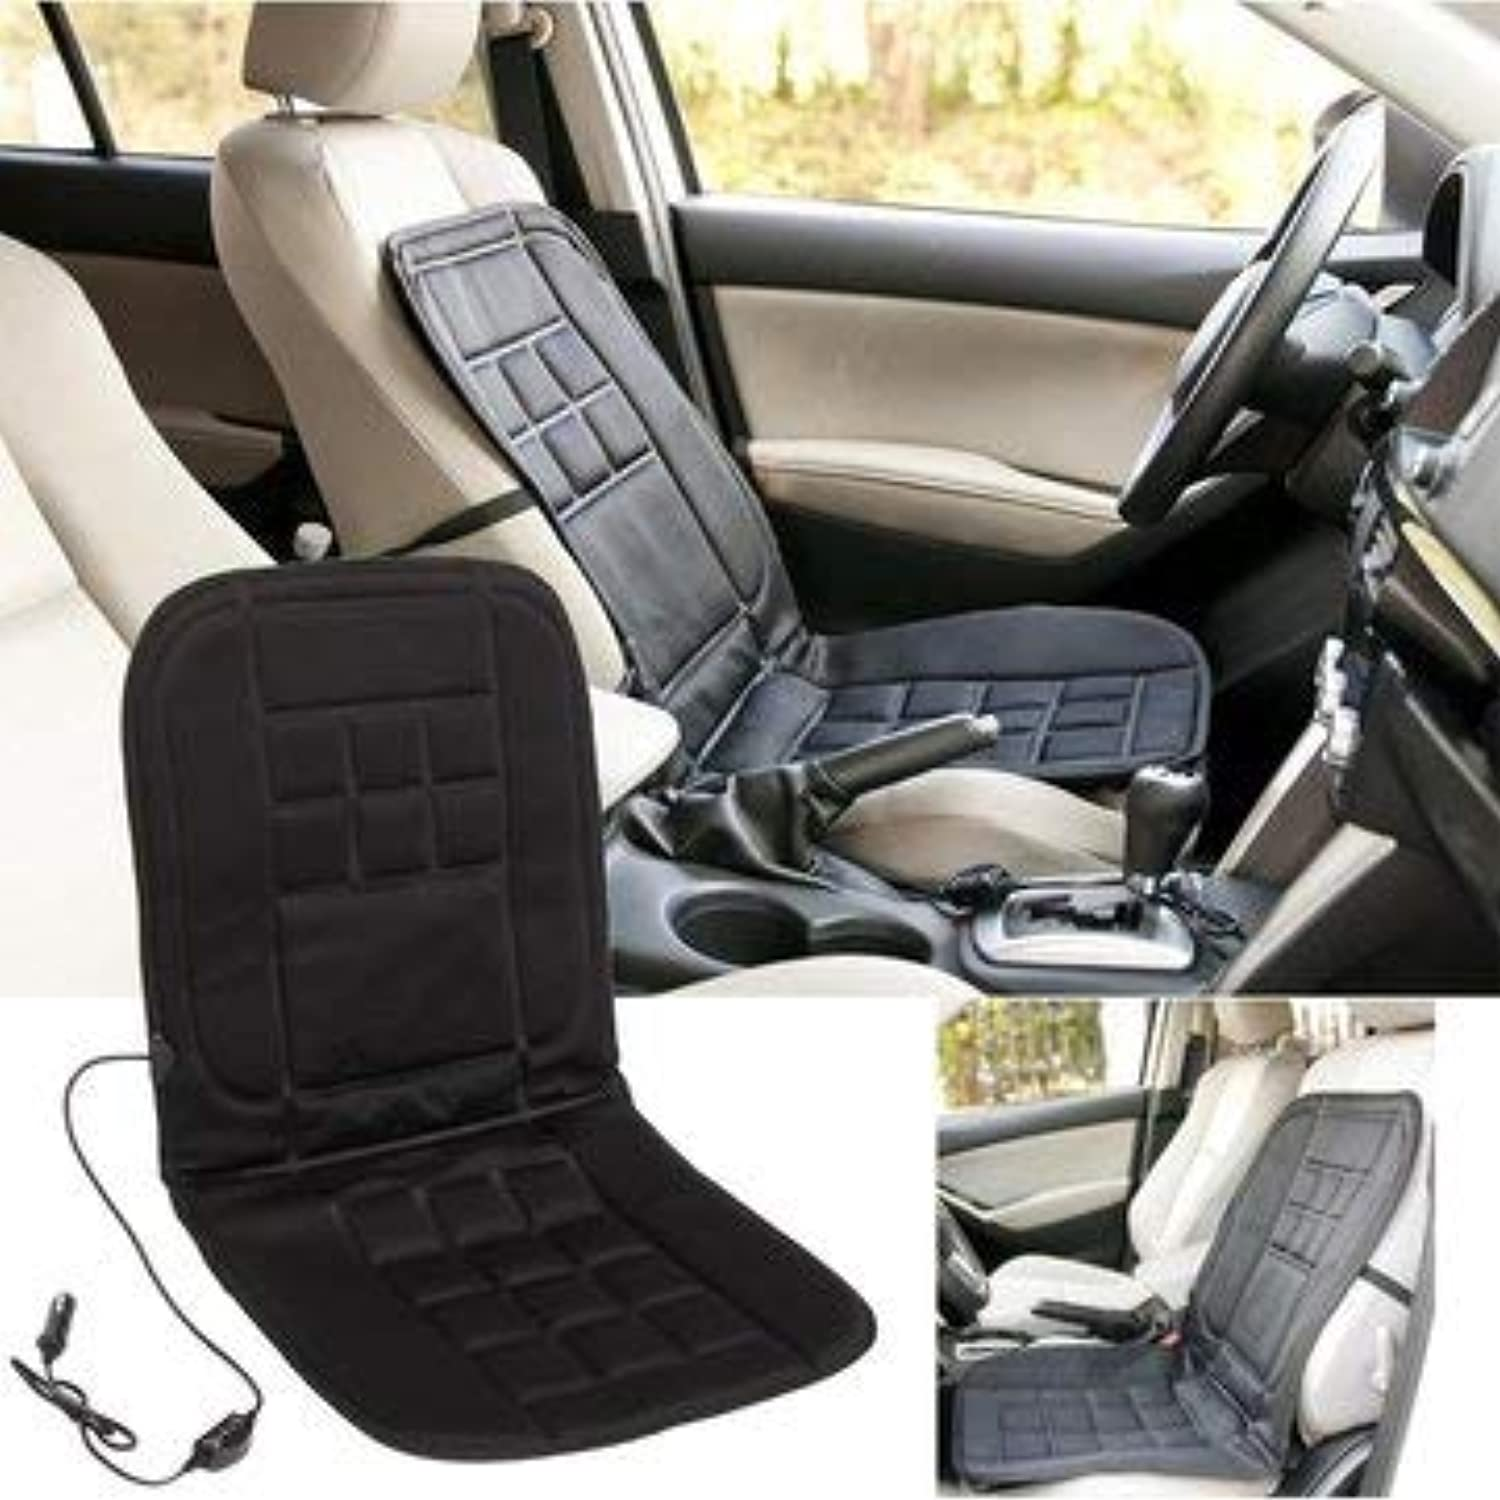 Car Seat Cushion  Car Seat Cushion Cover  Universal 12V Electric Car Front Seat Heating Cover Padded Thermal Cushion Black (Heated Car Seat Cover)